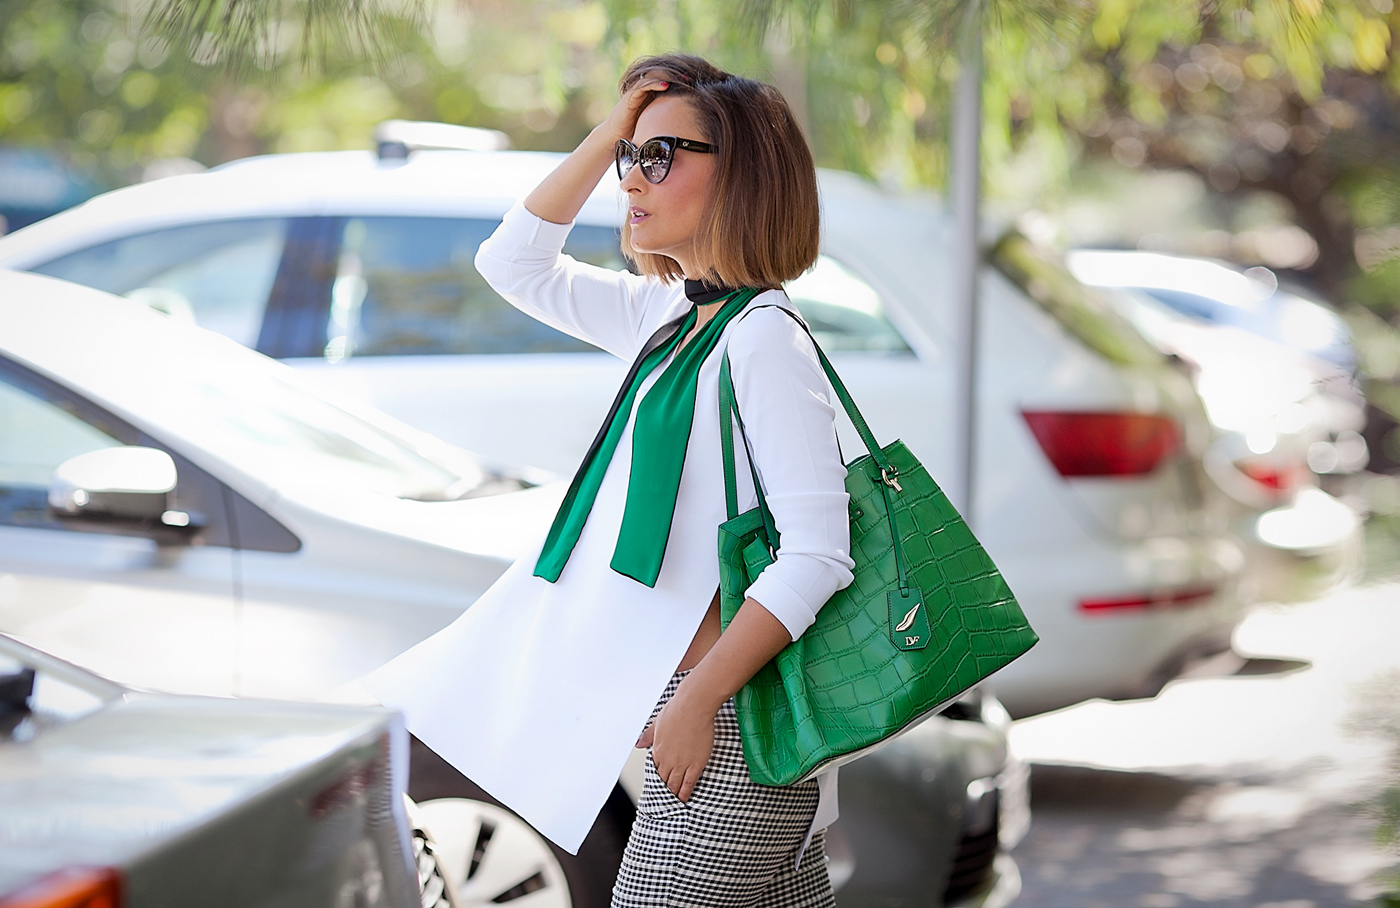 diane-von-furstenberg-bag-fashion+blogger+galant+girl